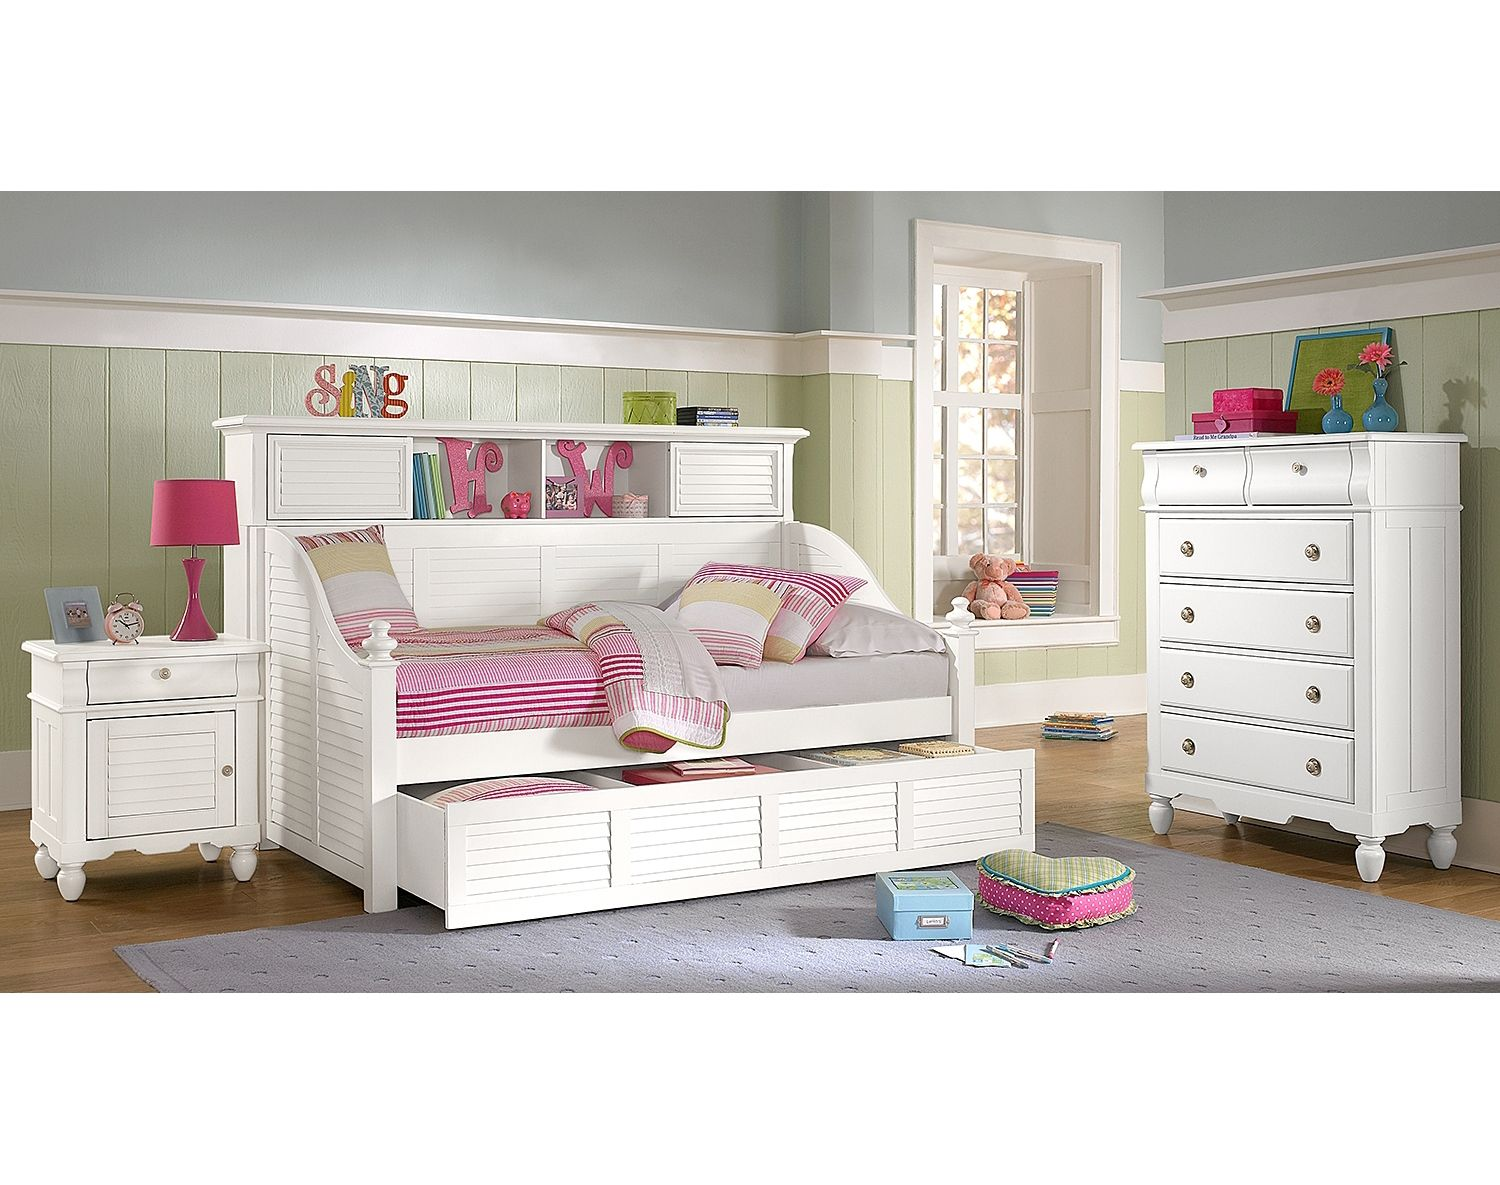 The Seaside White Ii Collection Value City Furniture White